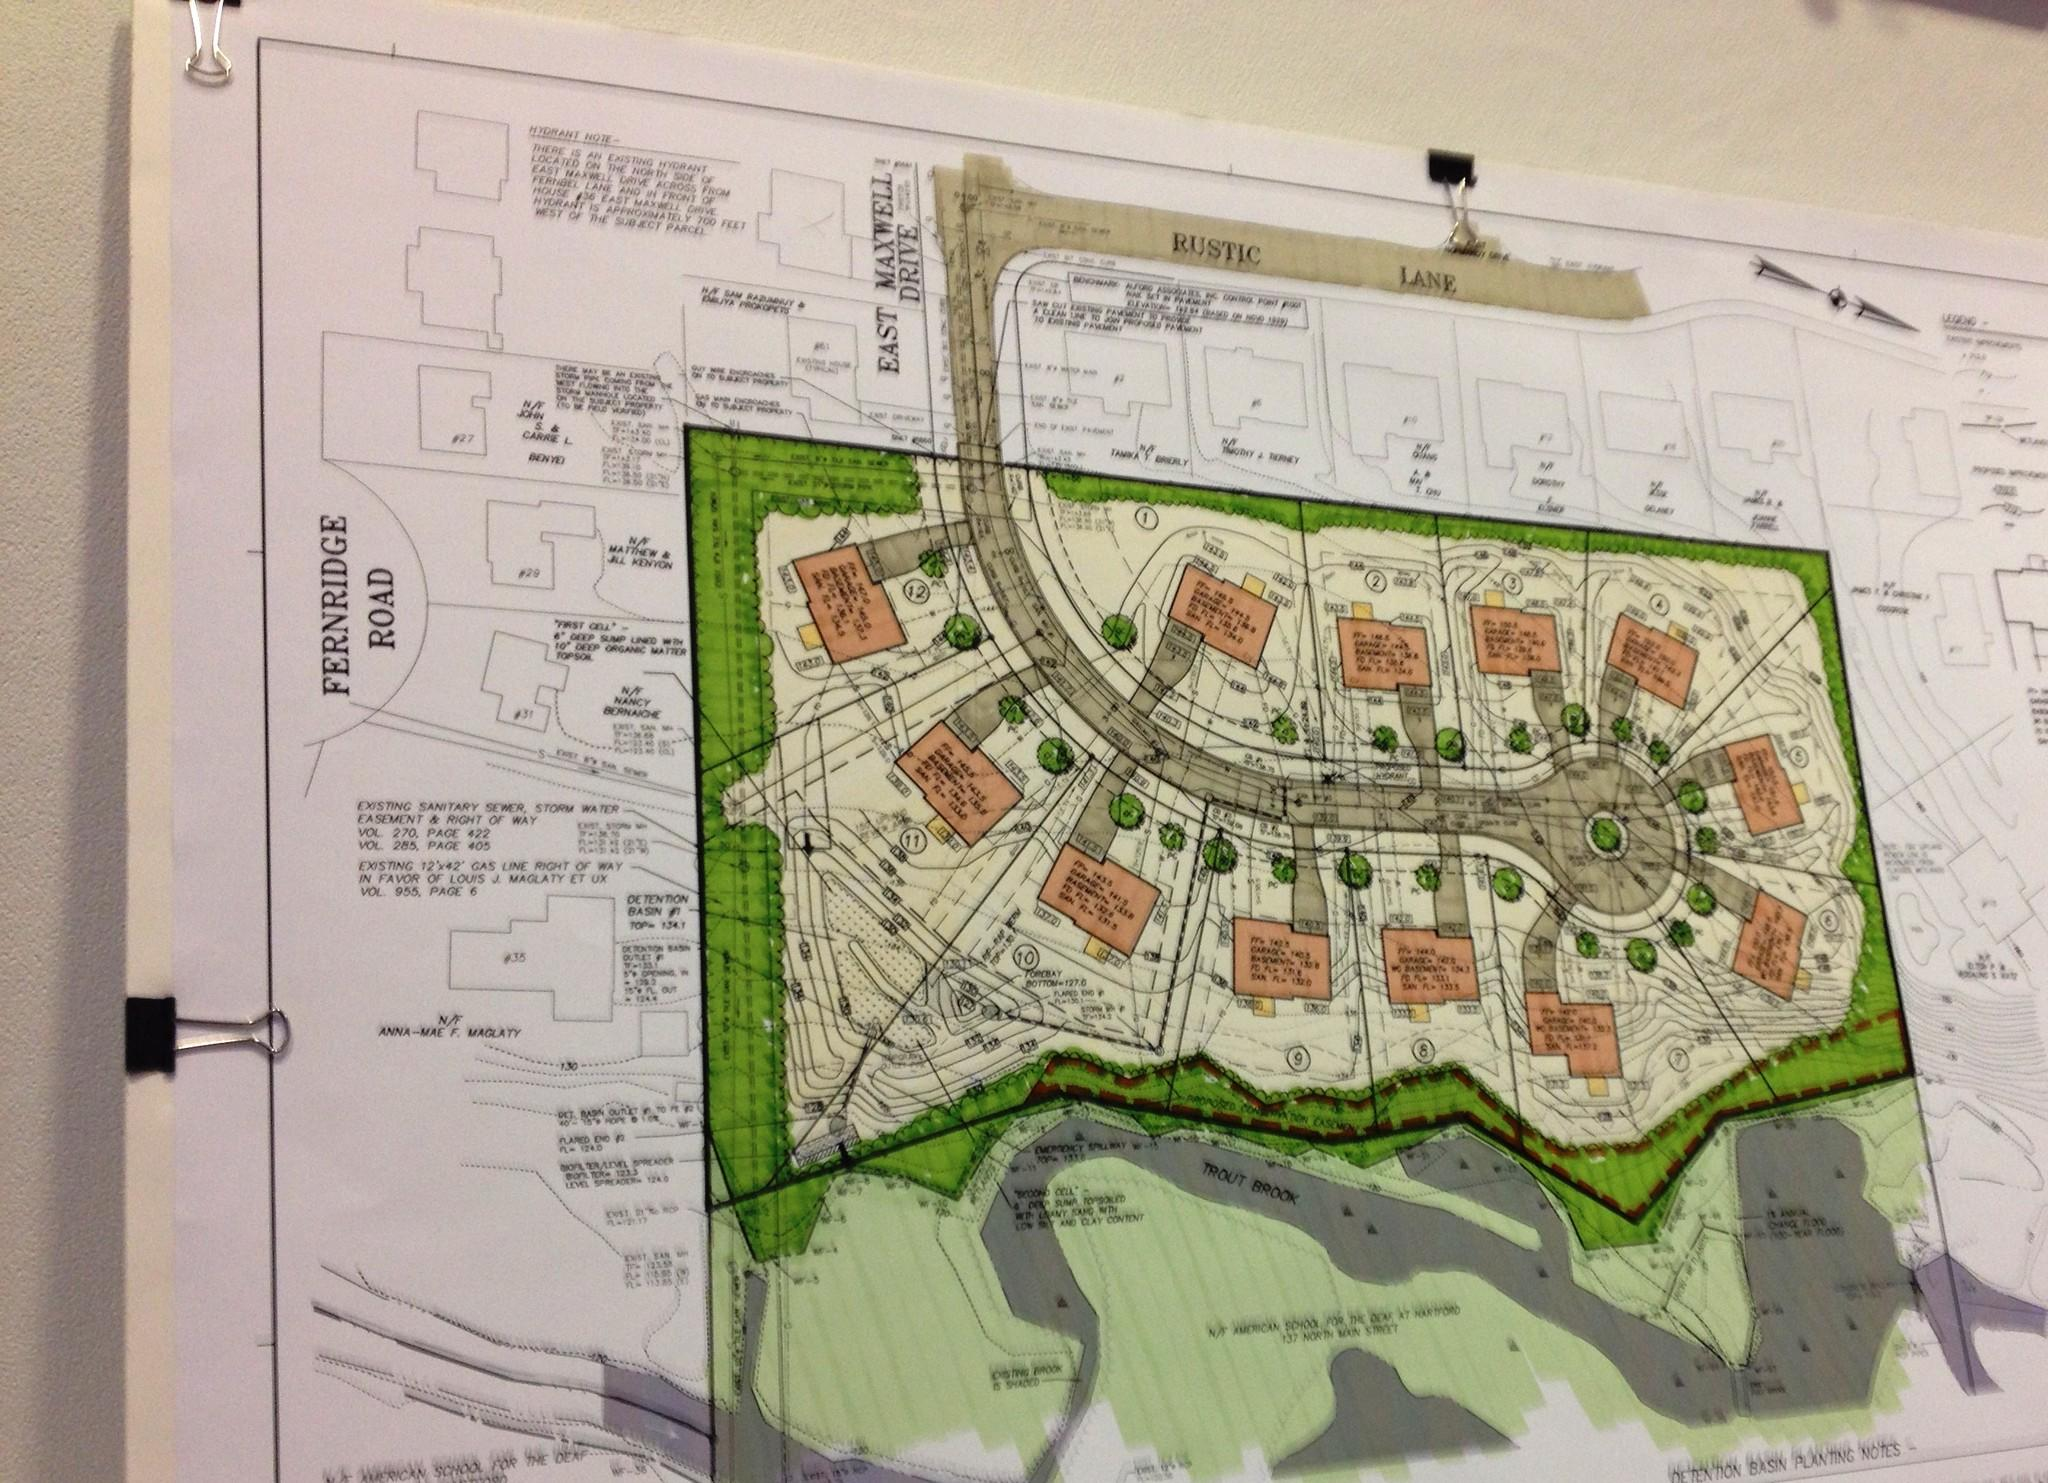 This plan for a 12-lot subdivision on 5.53 acres at the rear of American School for the Deaf land was shown at the Jan. 6 town plan and zoning commission meeting. It has changed slightly since then.  The commission's decision on the controversial development has been delayed until Feb. 3.